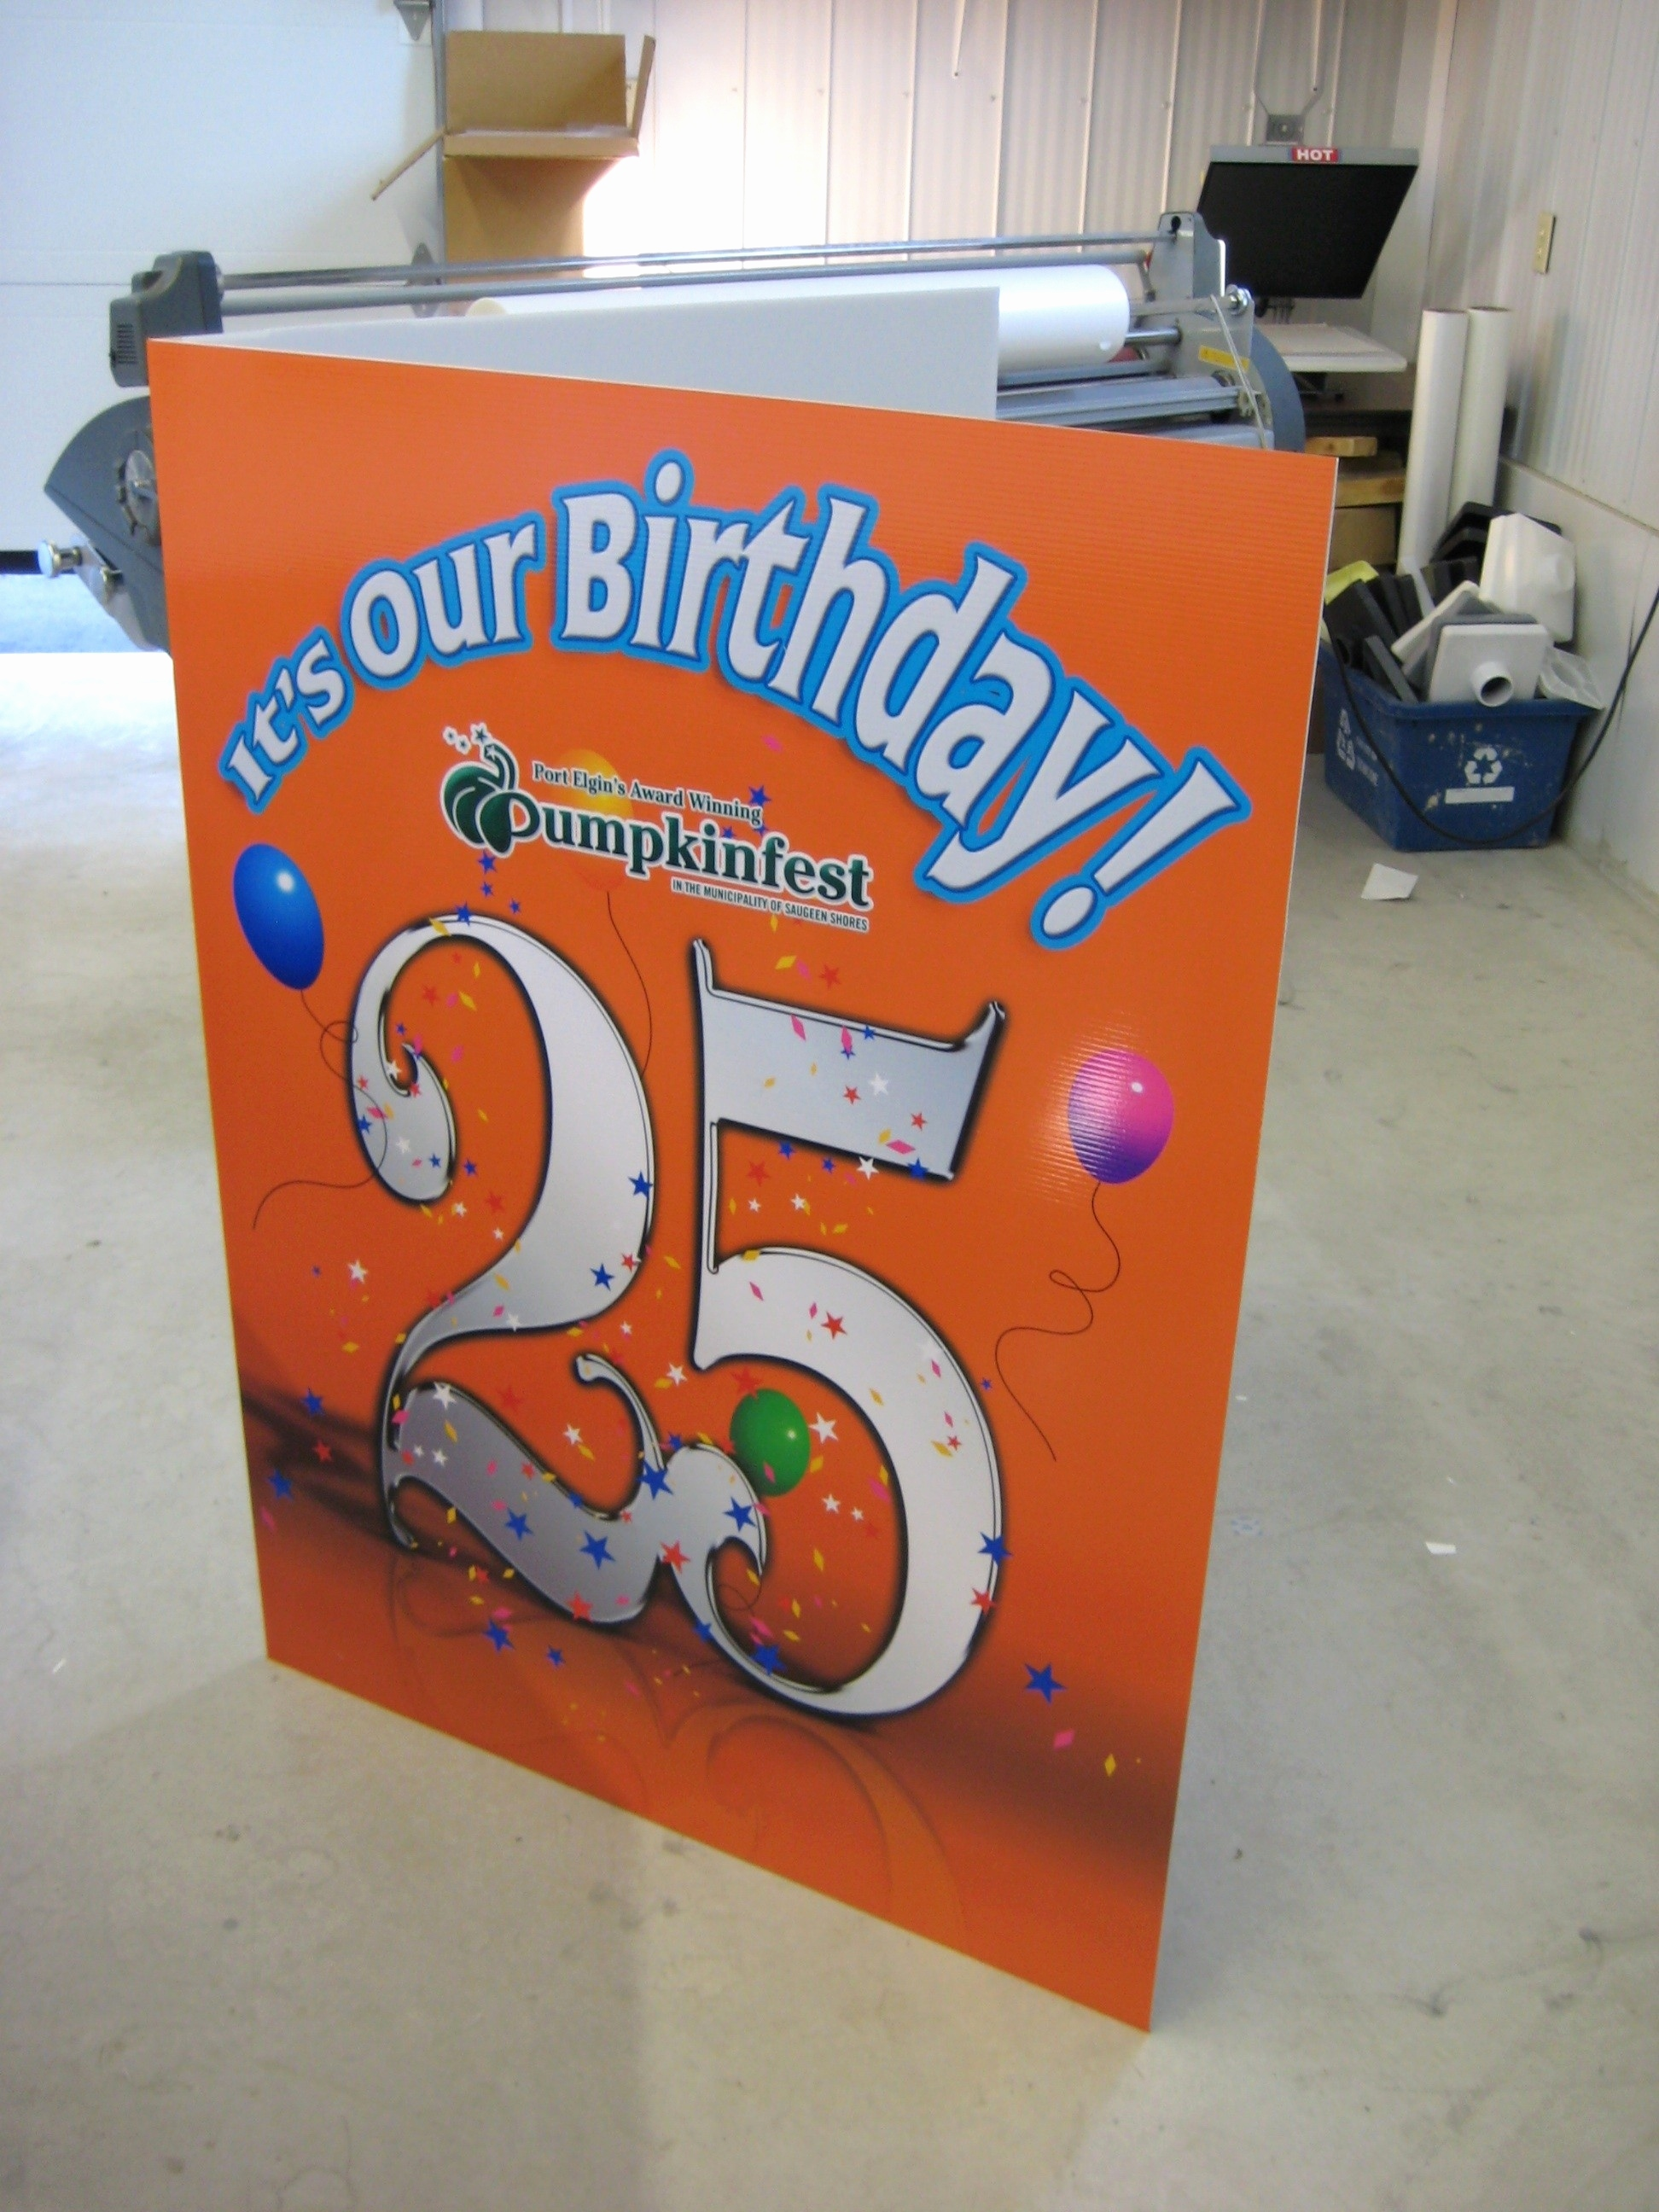 buy giant birthday card ; where-to-buy-birthday-cards-unique-93-fresh-where-do-they-sell-giant-birthday-cards-of-where-to-buy-birthday-cards